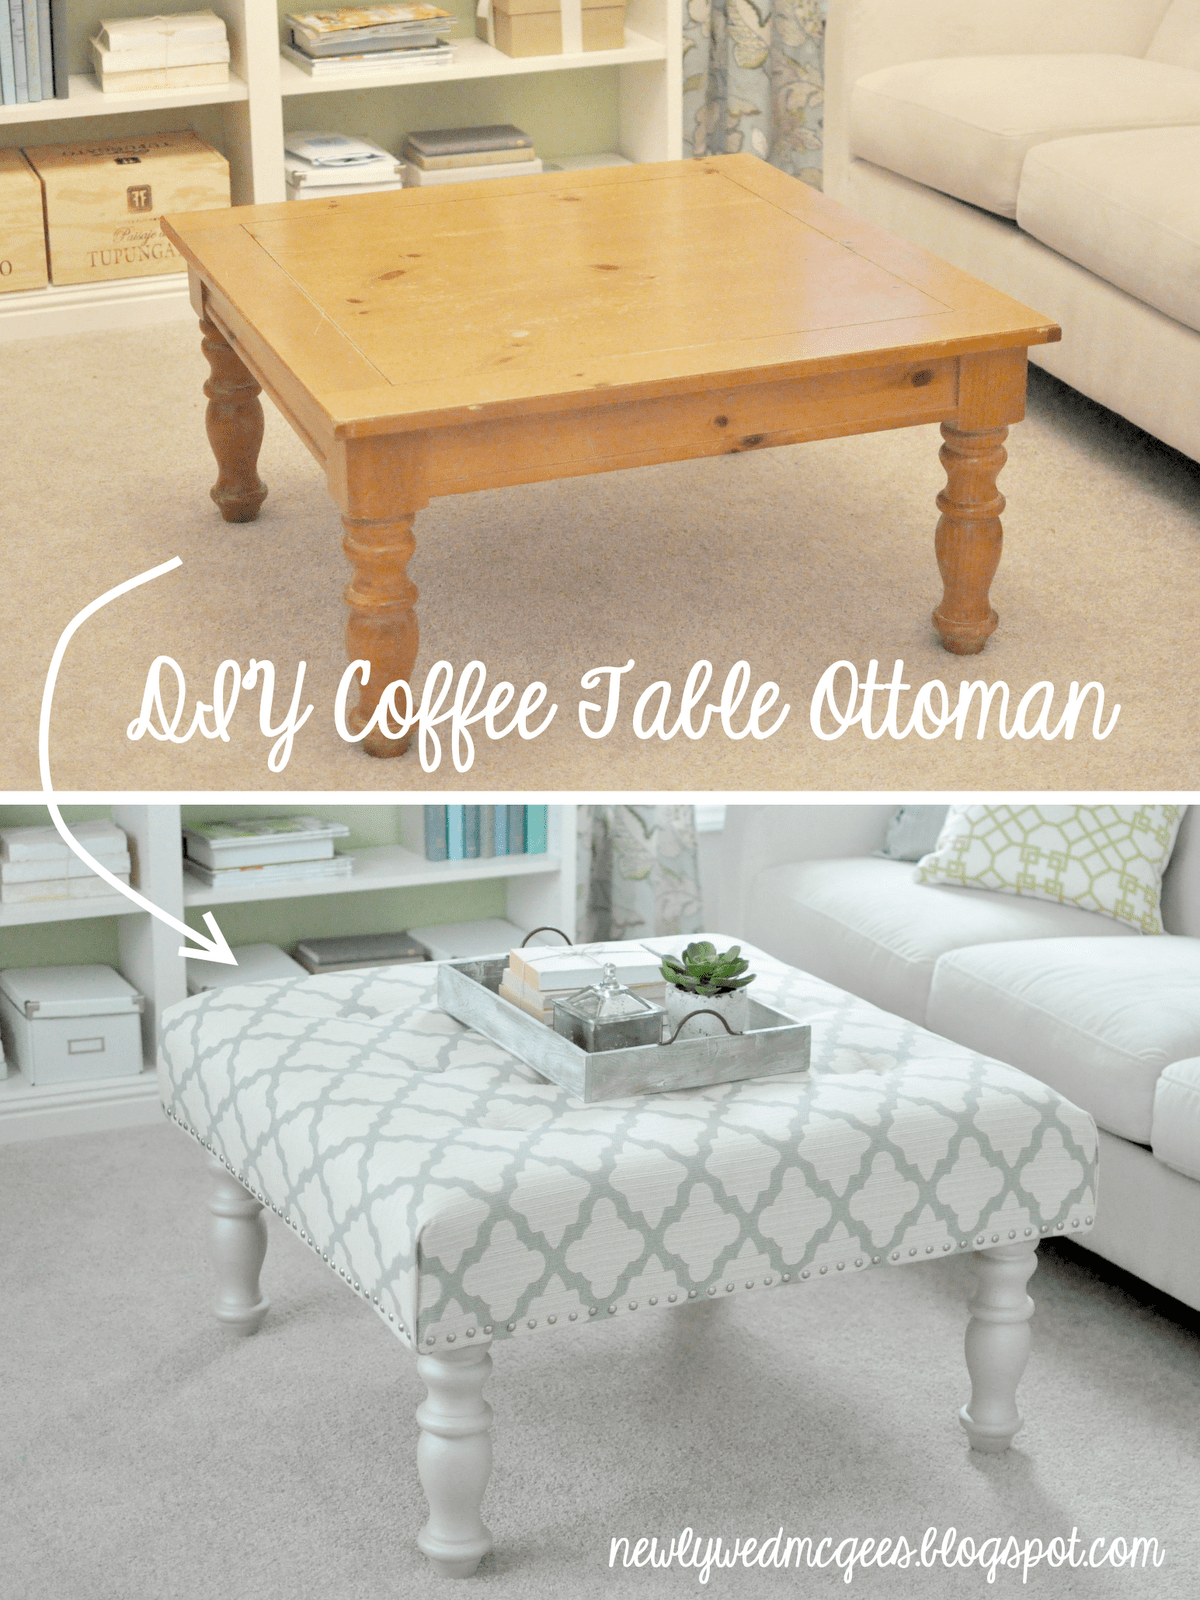 Coffee table to ottoman transformation